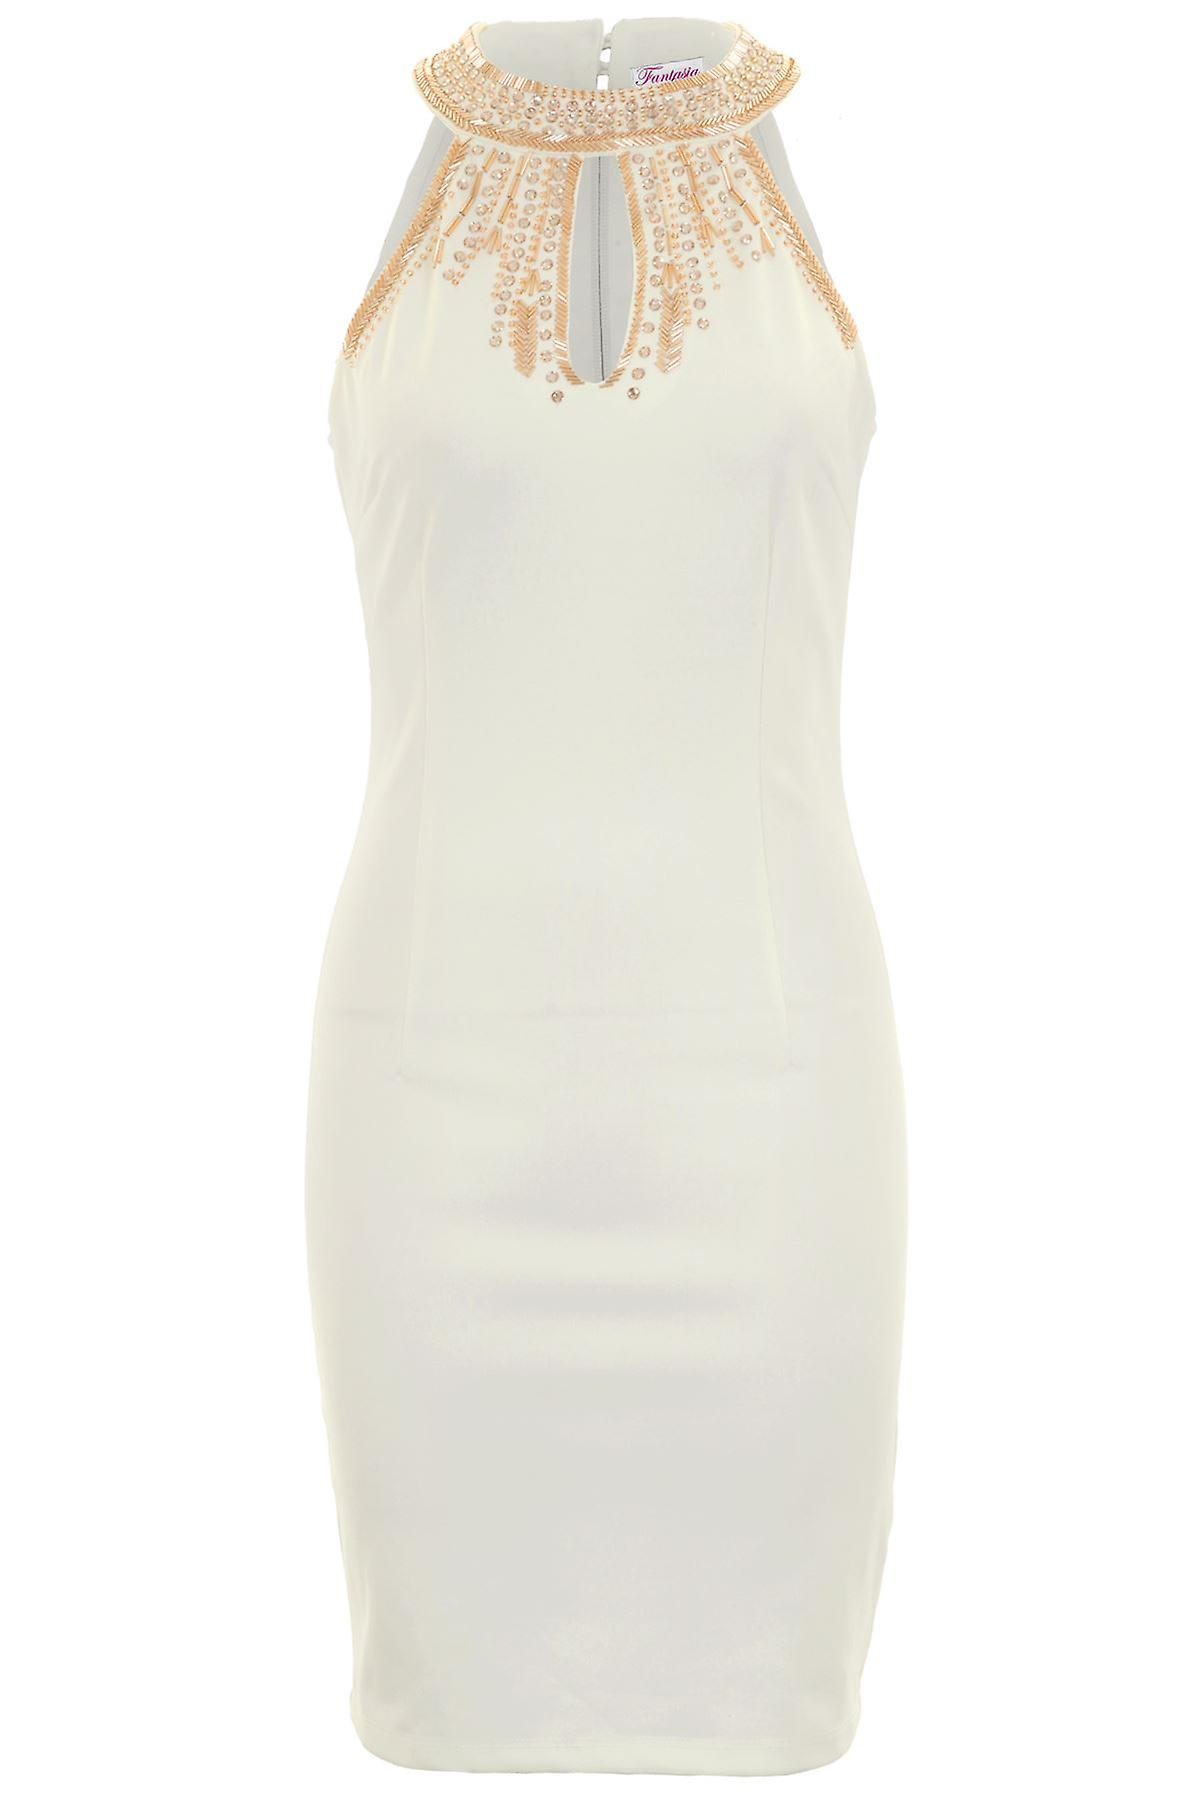 Ladies Sleeveless Cut Out Front Jewel Beaded High Neck Bodycon Short Dress